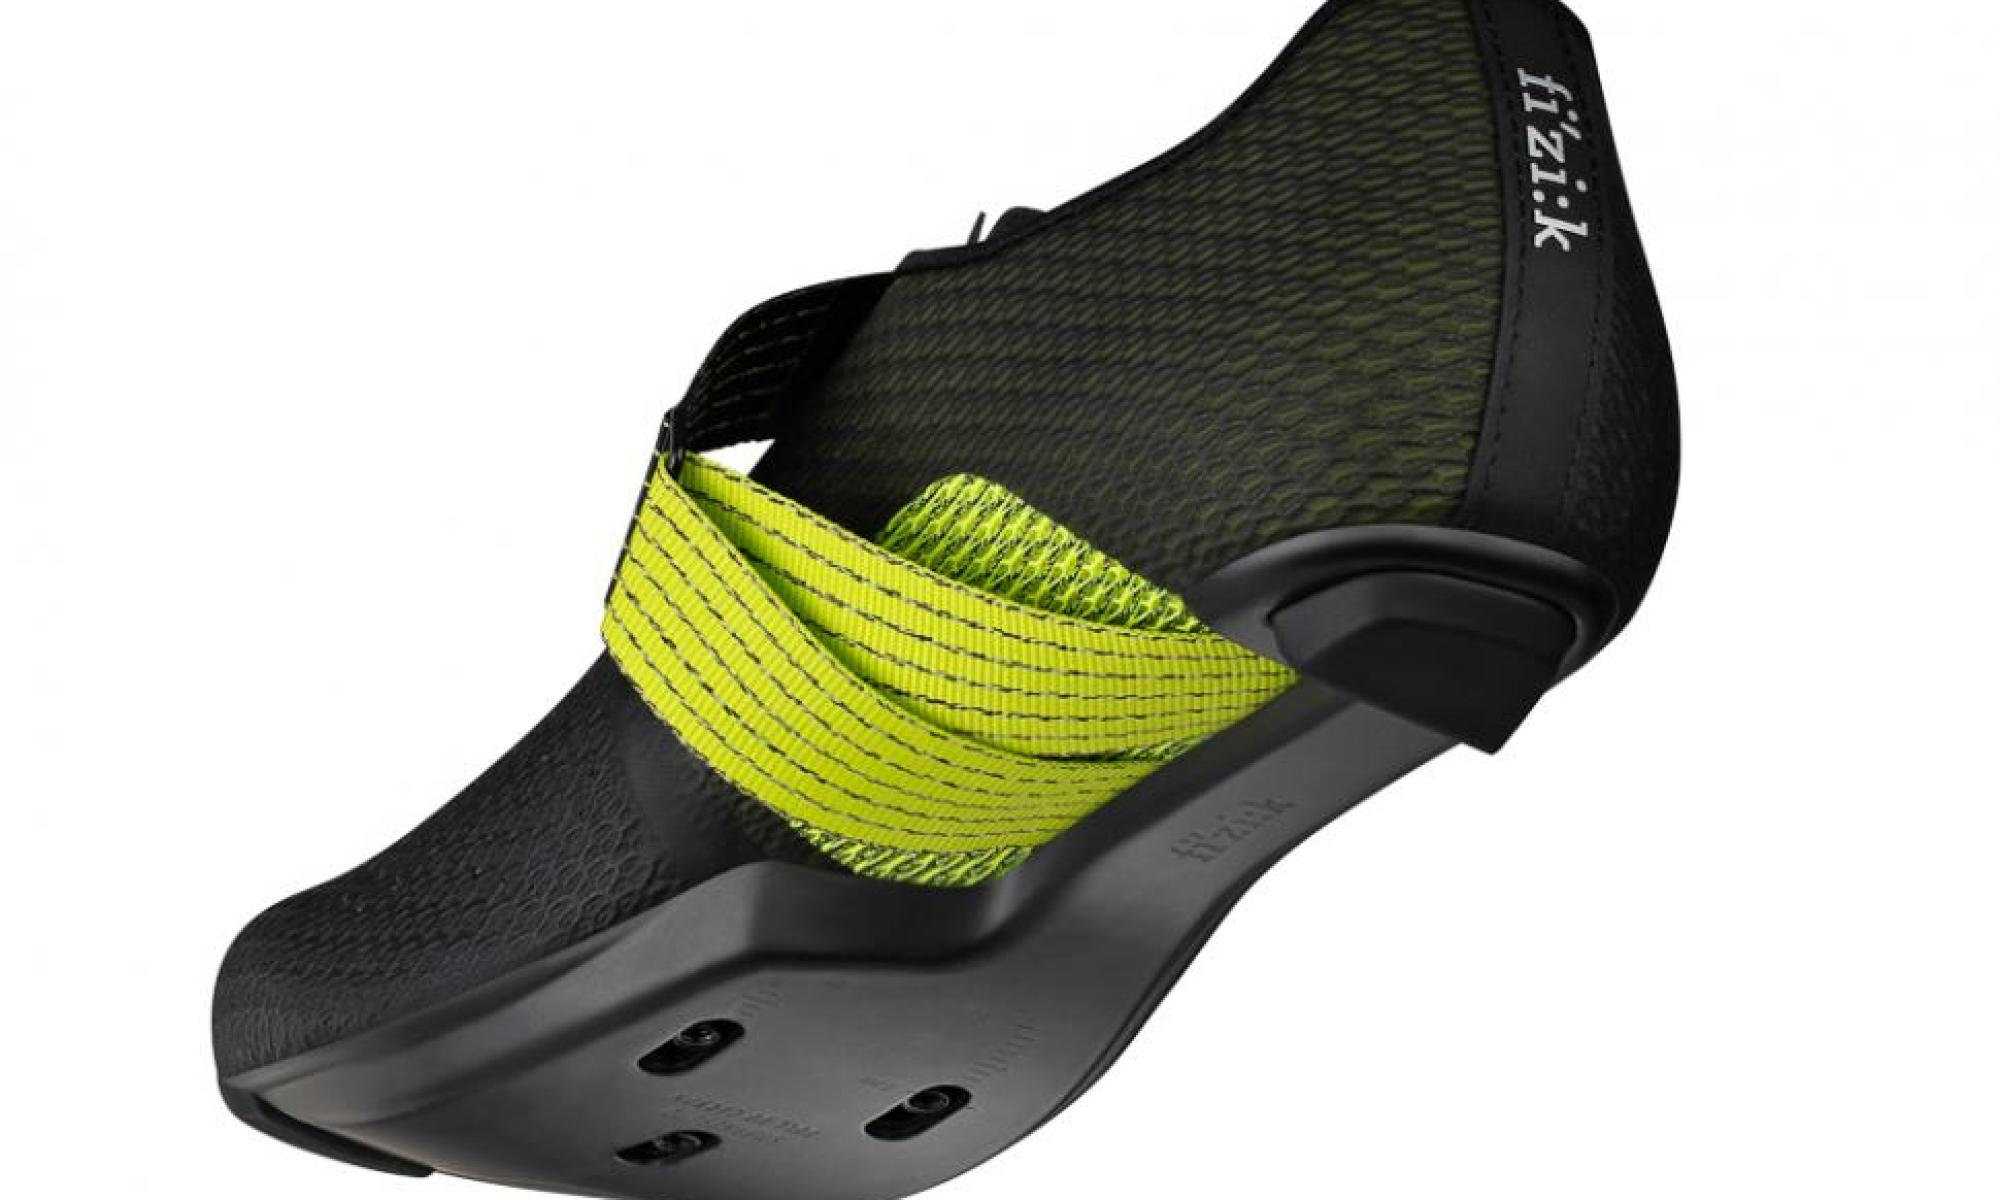 New Vento Stabilita Carbon road shoe –power transfer redesigned claims Fizik